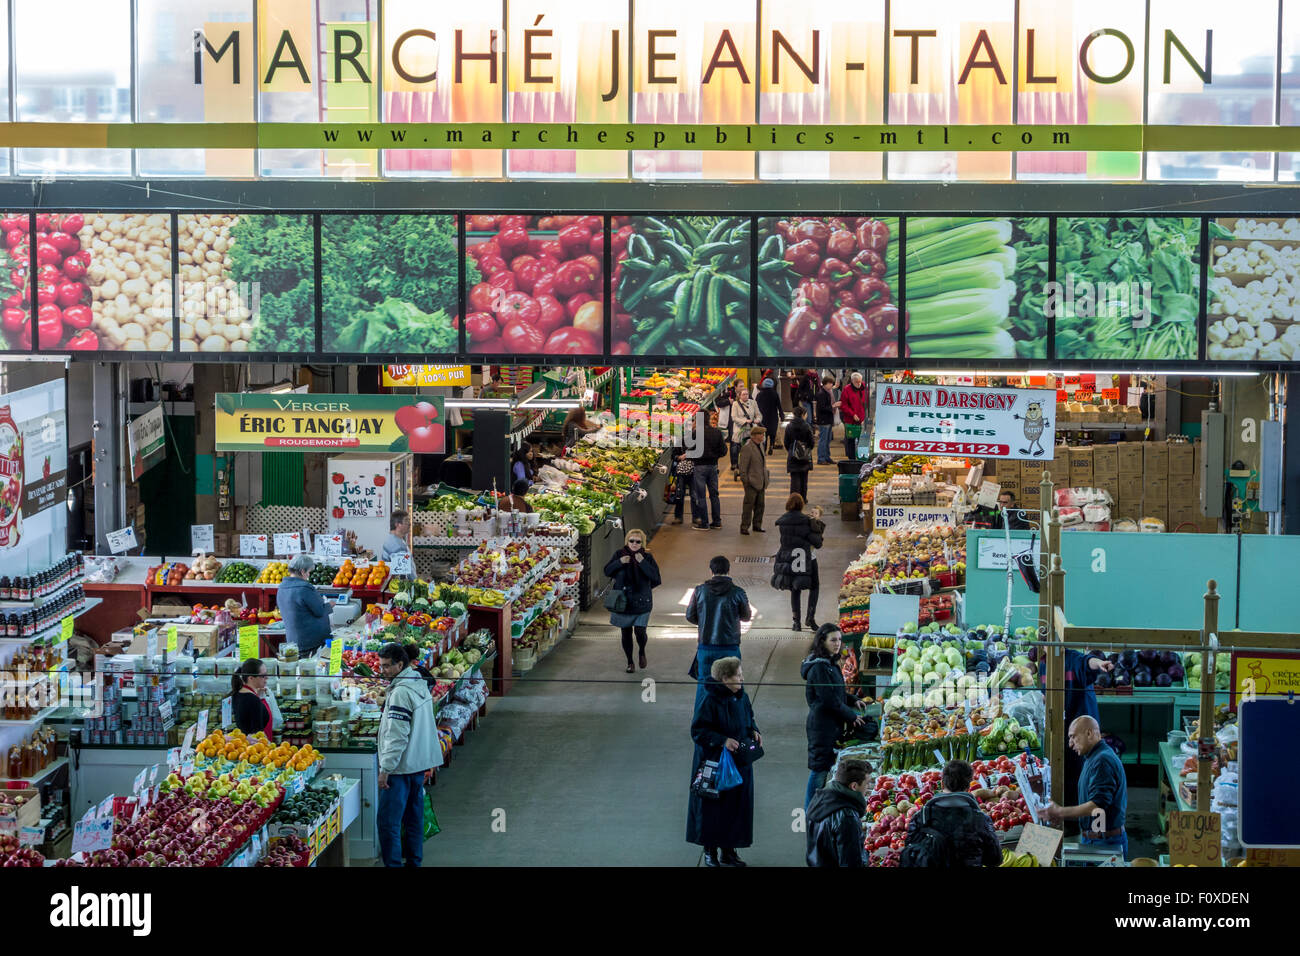 People buy groceries at Jean-Talon Market, the largest outdoor public market in North America. Circa April 2013, Stock Photo